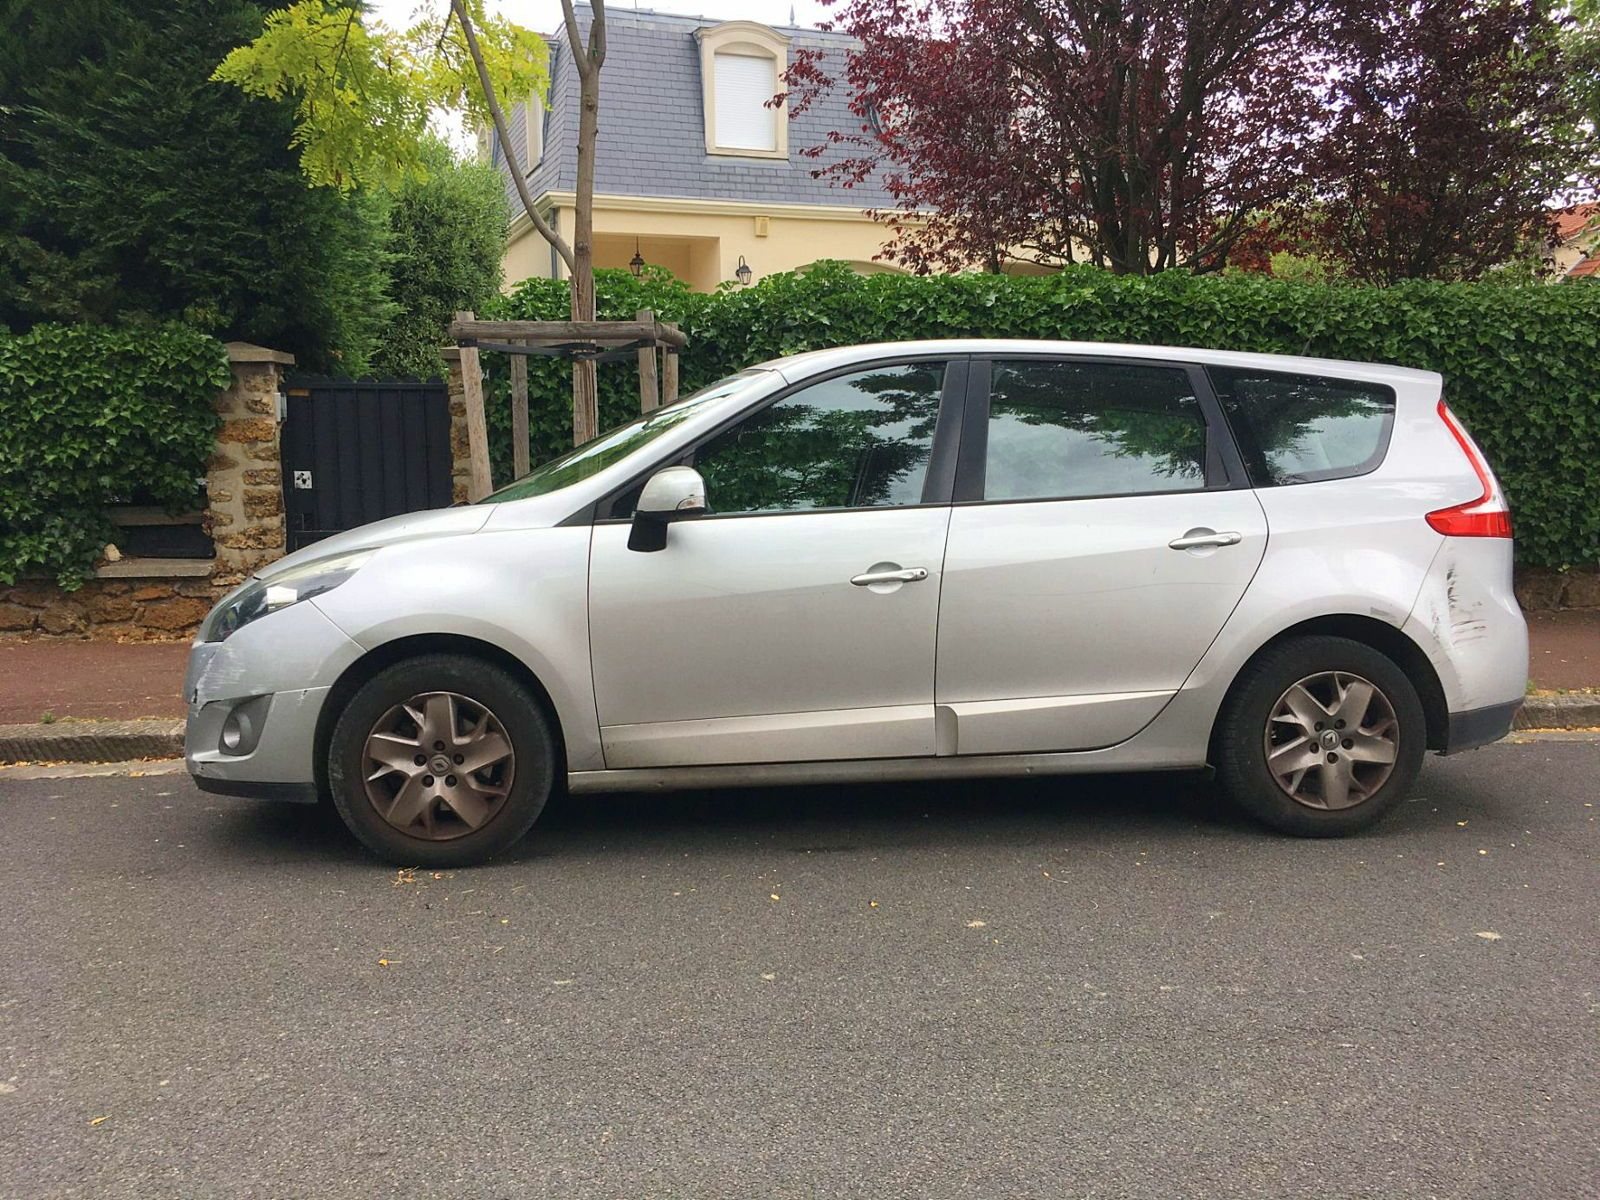 Vends Renault grand Scenic III 1.5 DCI 110 FAP Expression 7 places - 2011, 186000km